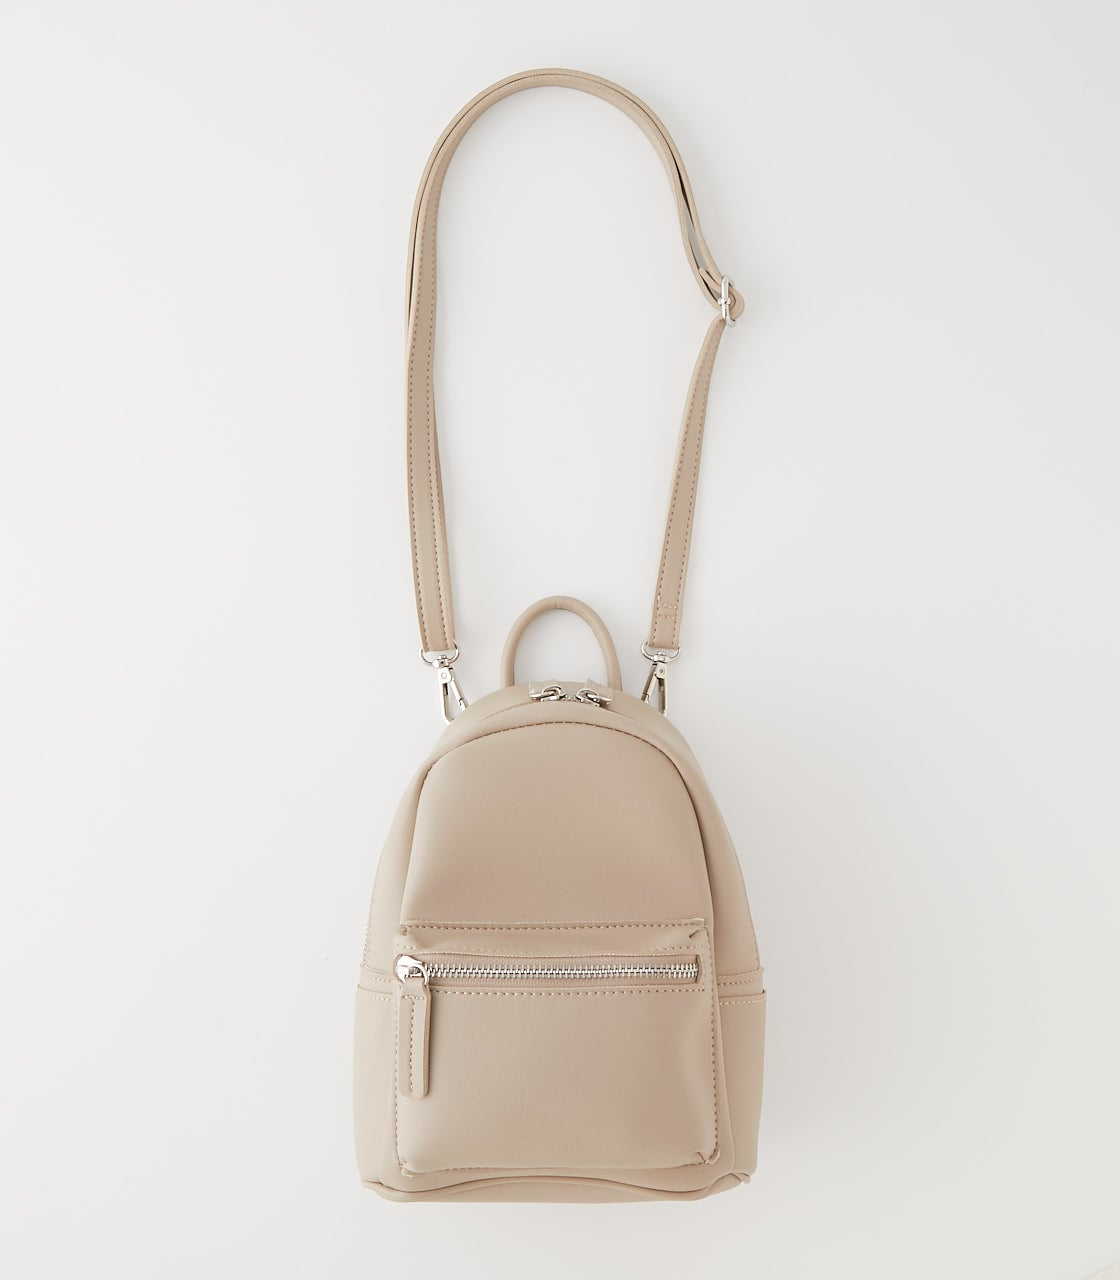 2WAY MINI BACKPACK/2WAYミニバックパック 詳細画像 L/BEG 4